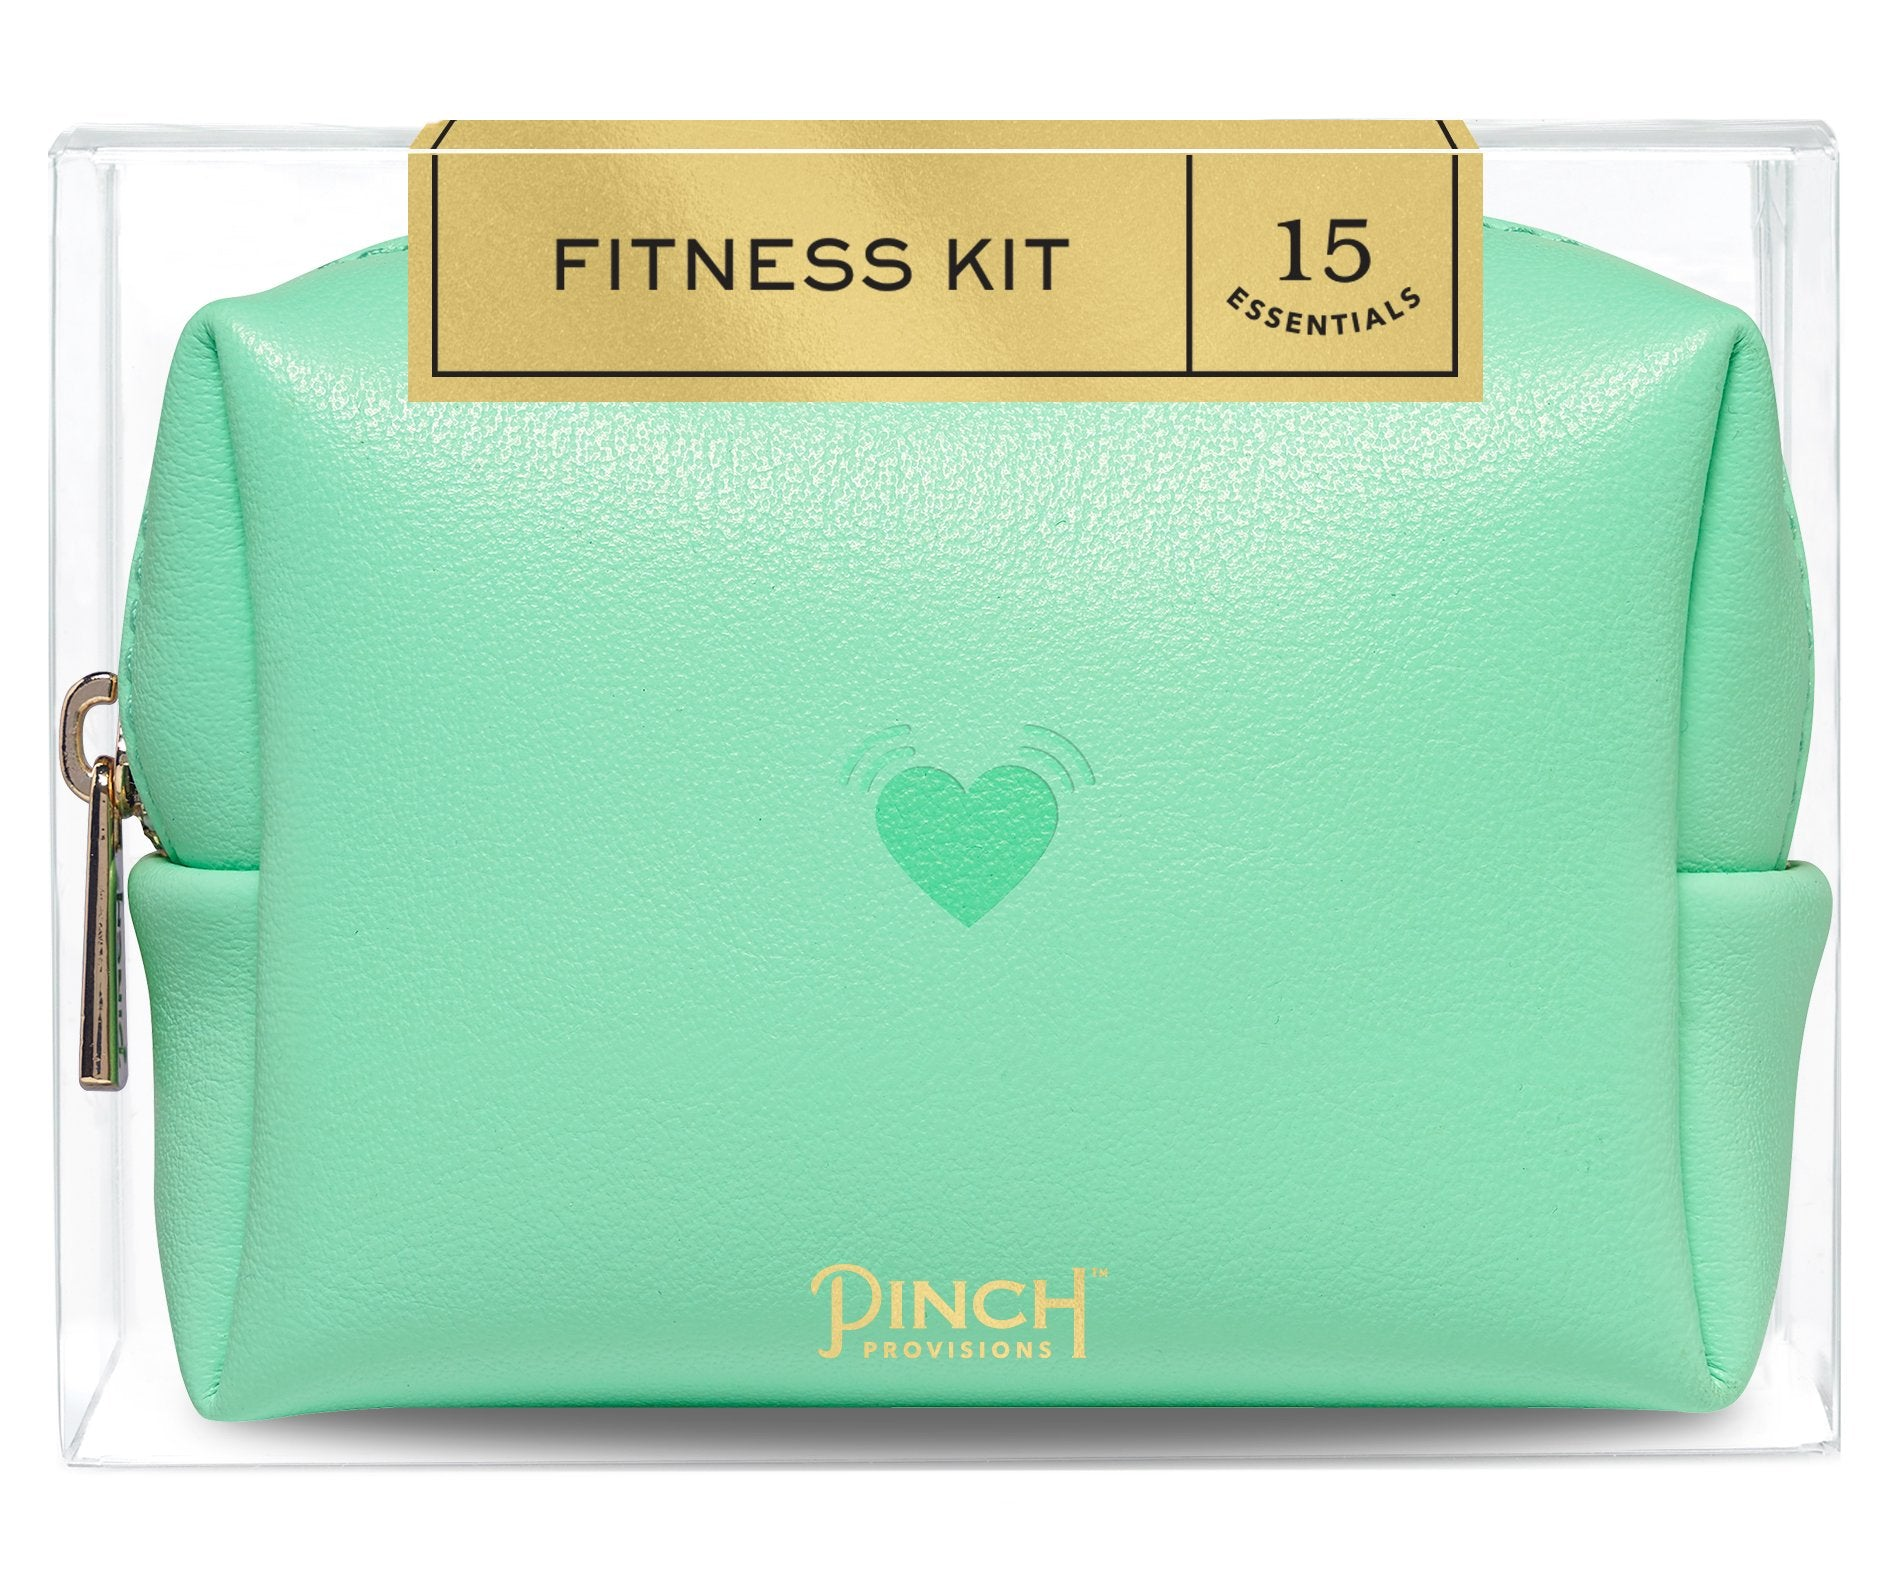 Mini Emergency Fitness Kit